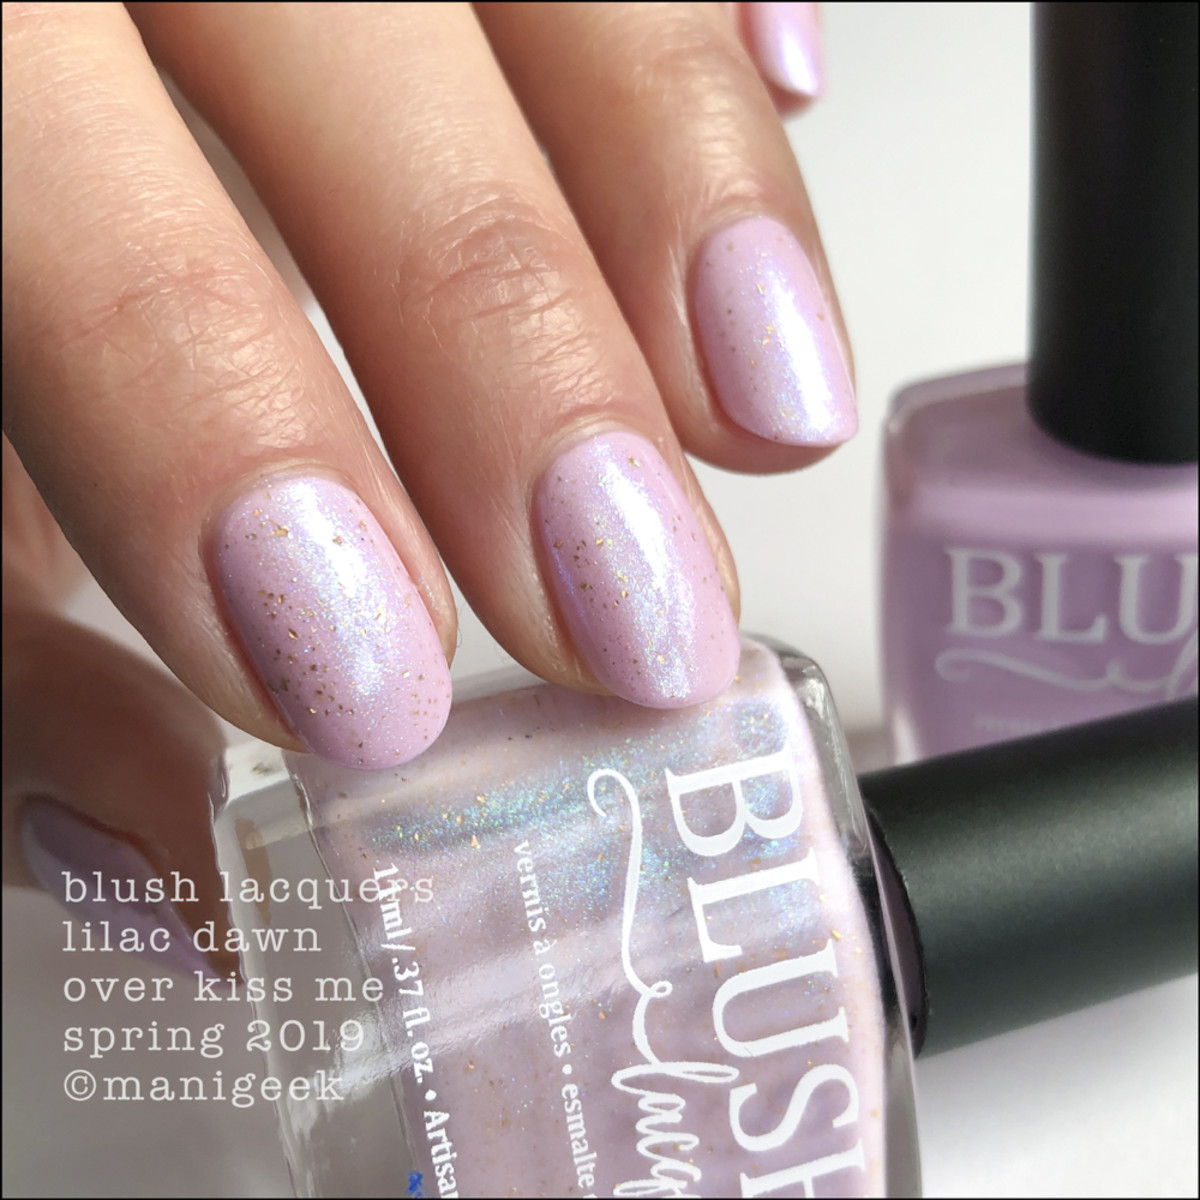 Blush Lacquers Lilac Dawn over Kiss Me - Blush Lacquer Spring 2019